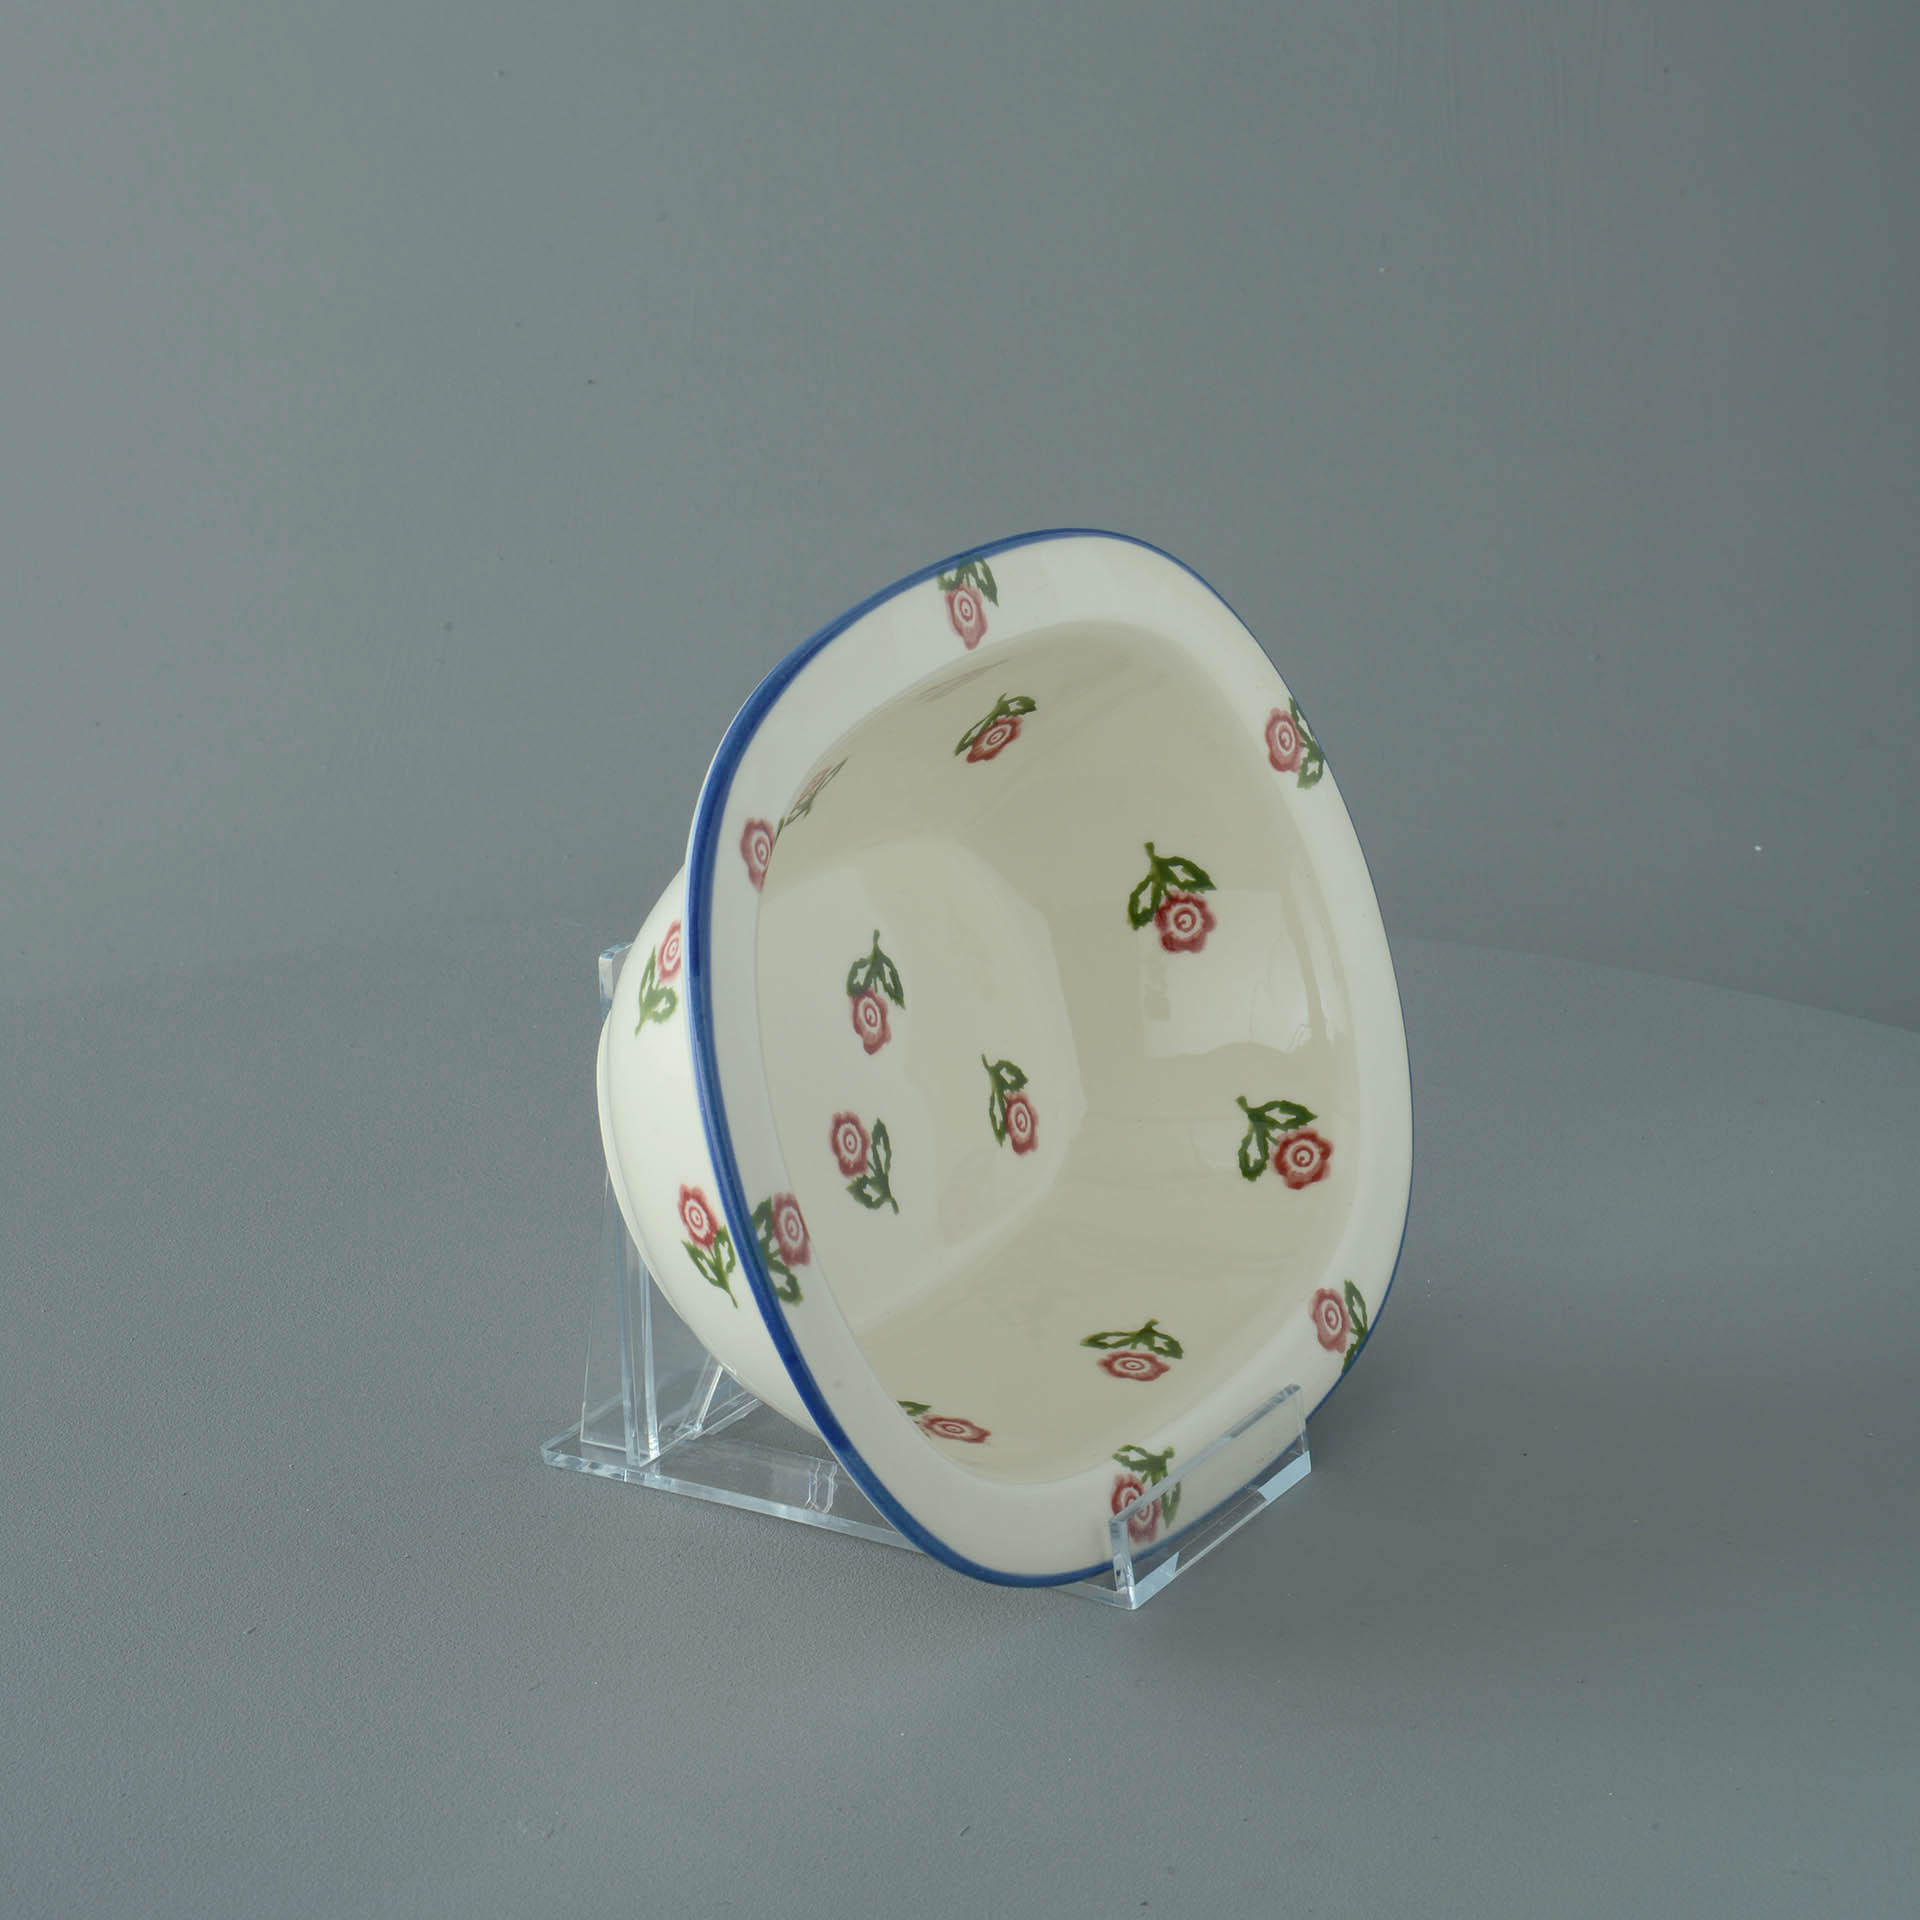 Scattered Rose Standard Pie Dish 23.5 x 18.5 x 6.5cm